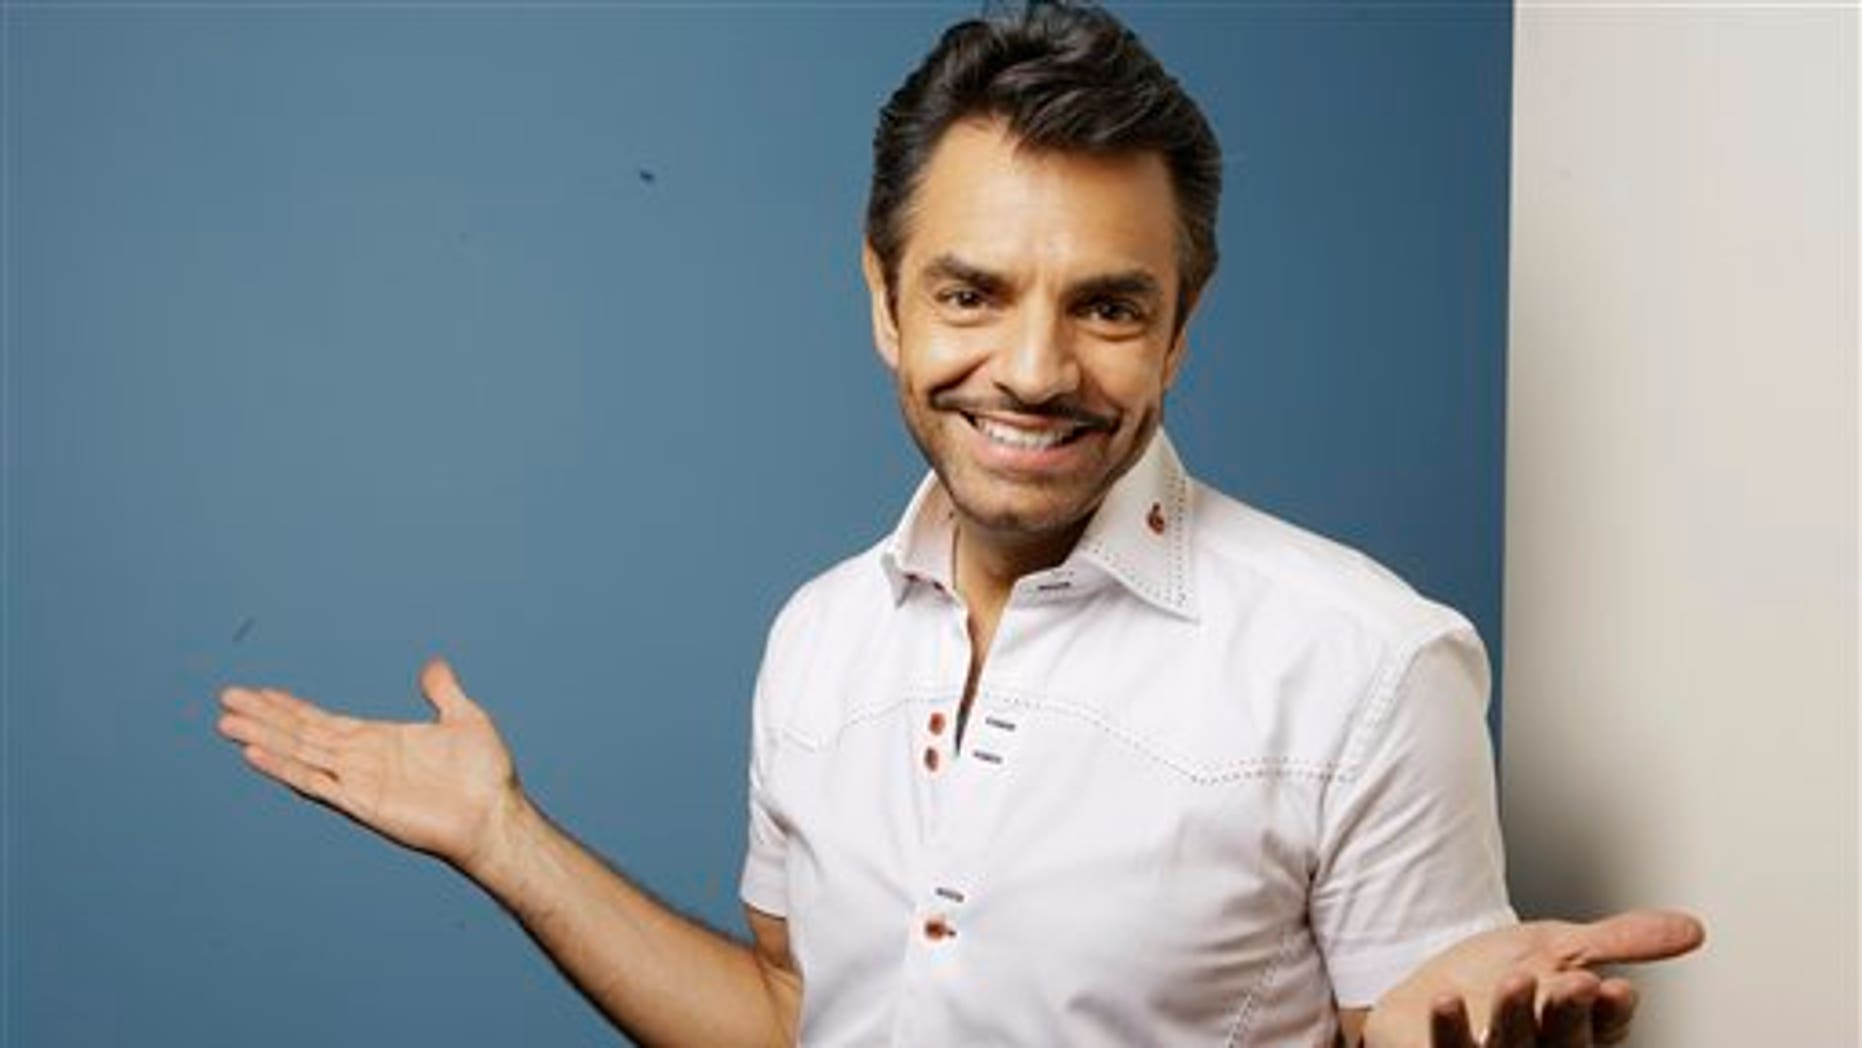 Eugenio Derbez.